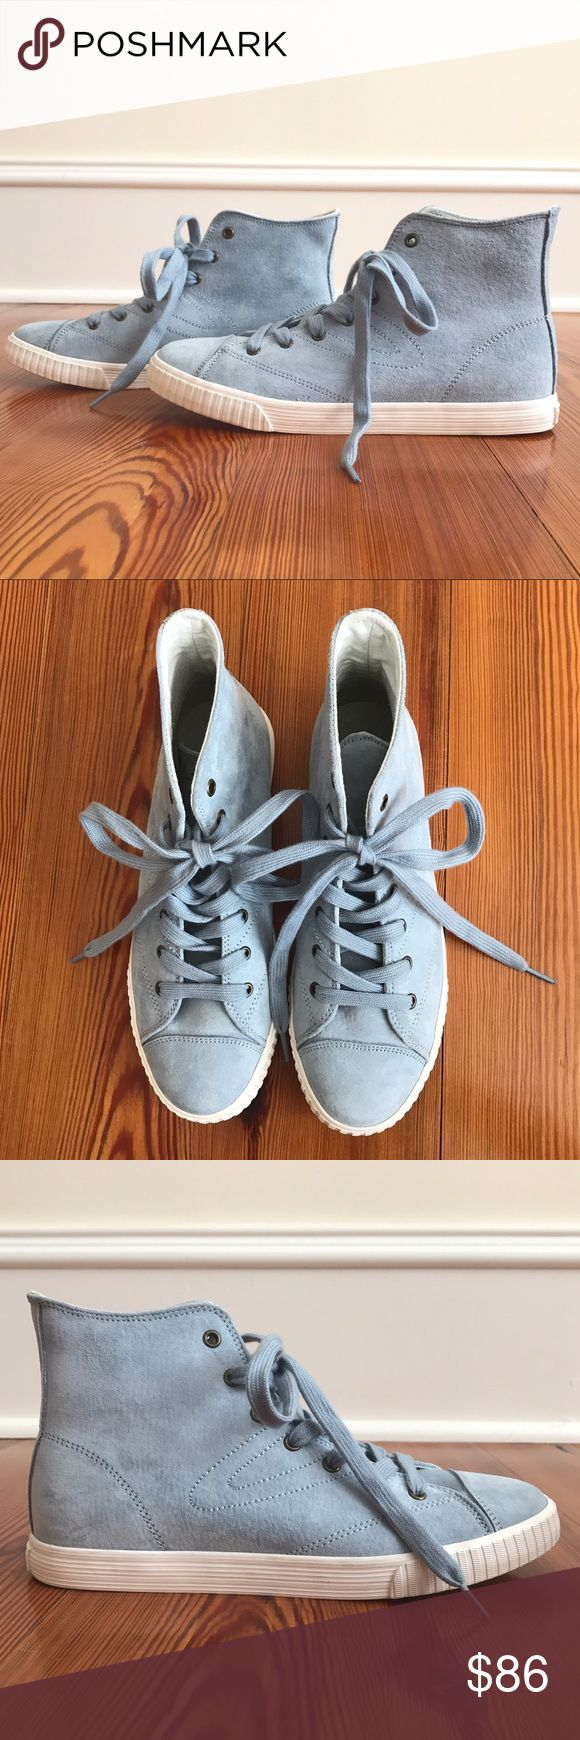 NEW NEVER WORN Blue Tretorn Hightops NEW NEVER WORN blue Tretorn hightops. These shoes are super cute and stylish in size women's US 8. They super comfortable and retro!! Tretorn Shoes